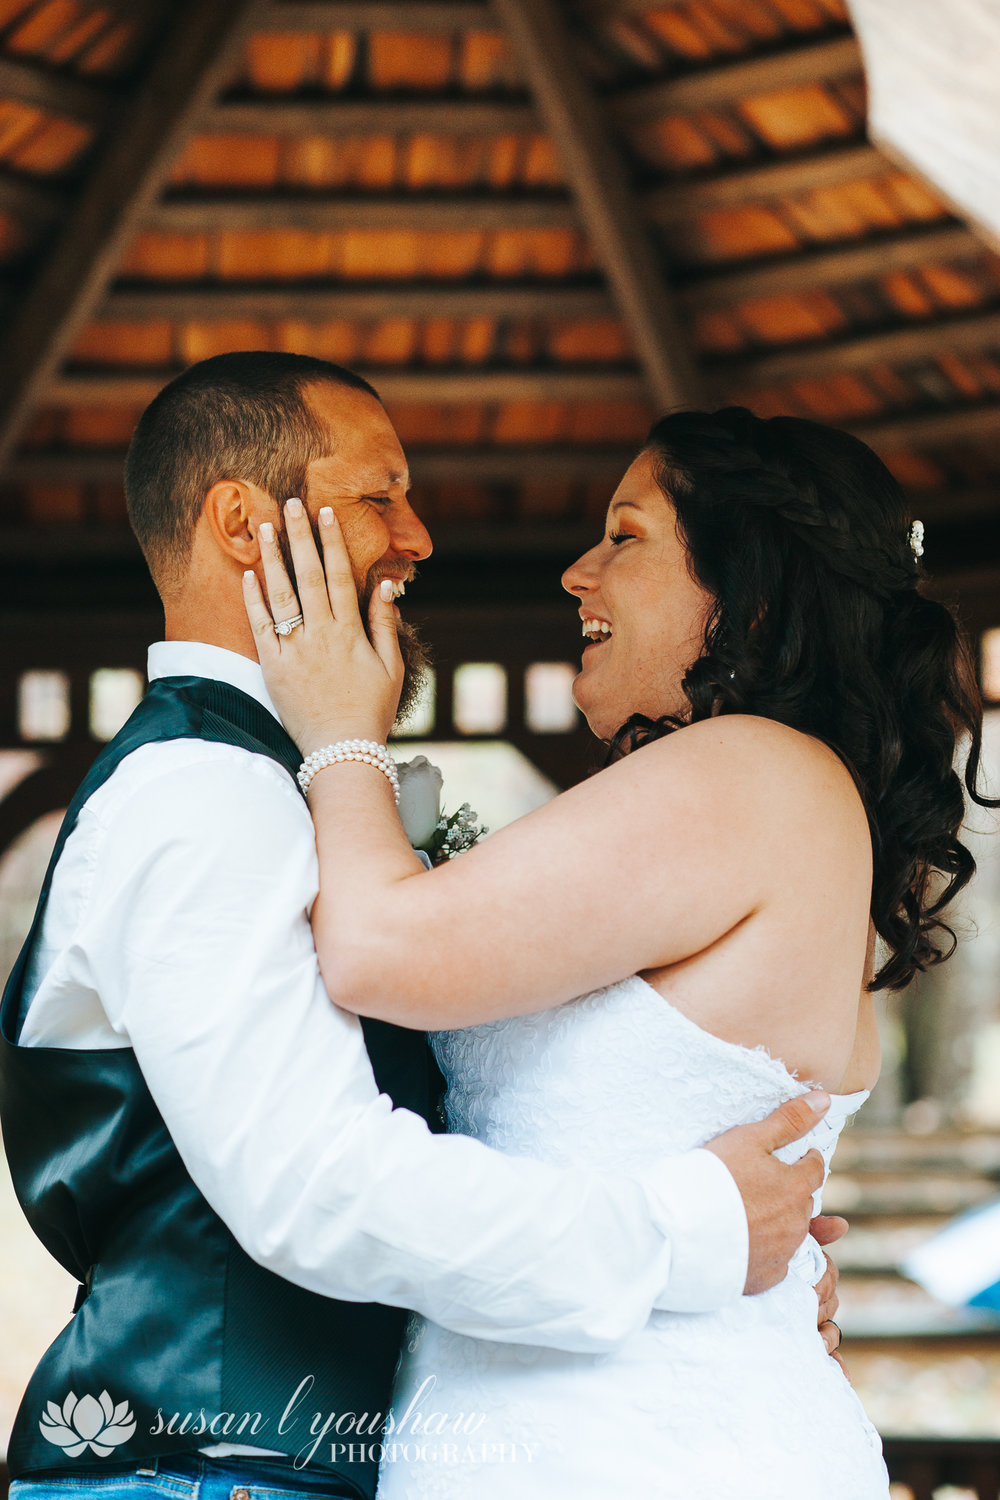 Blog Kayla and Scott 10-27-2018 SLY Photography LLC -123.jpg